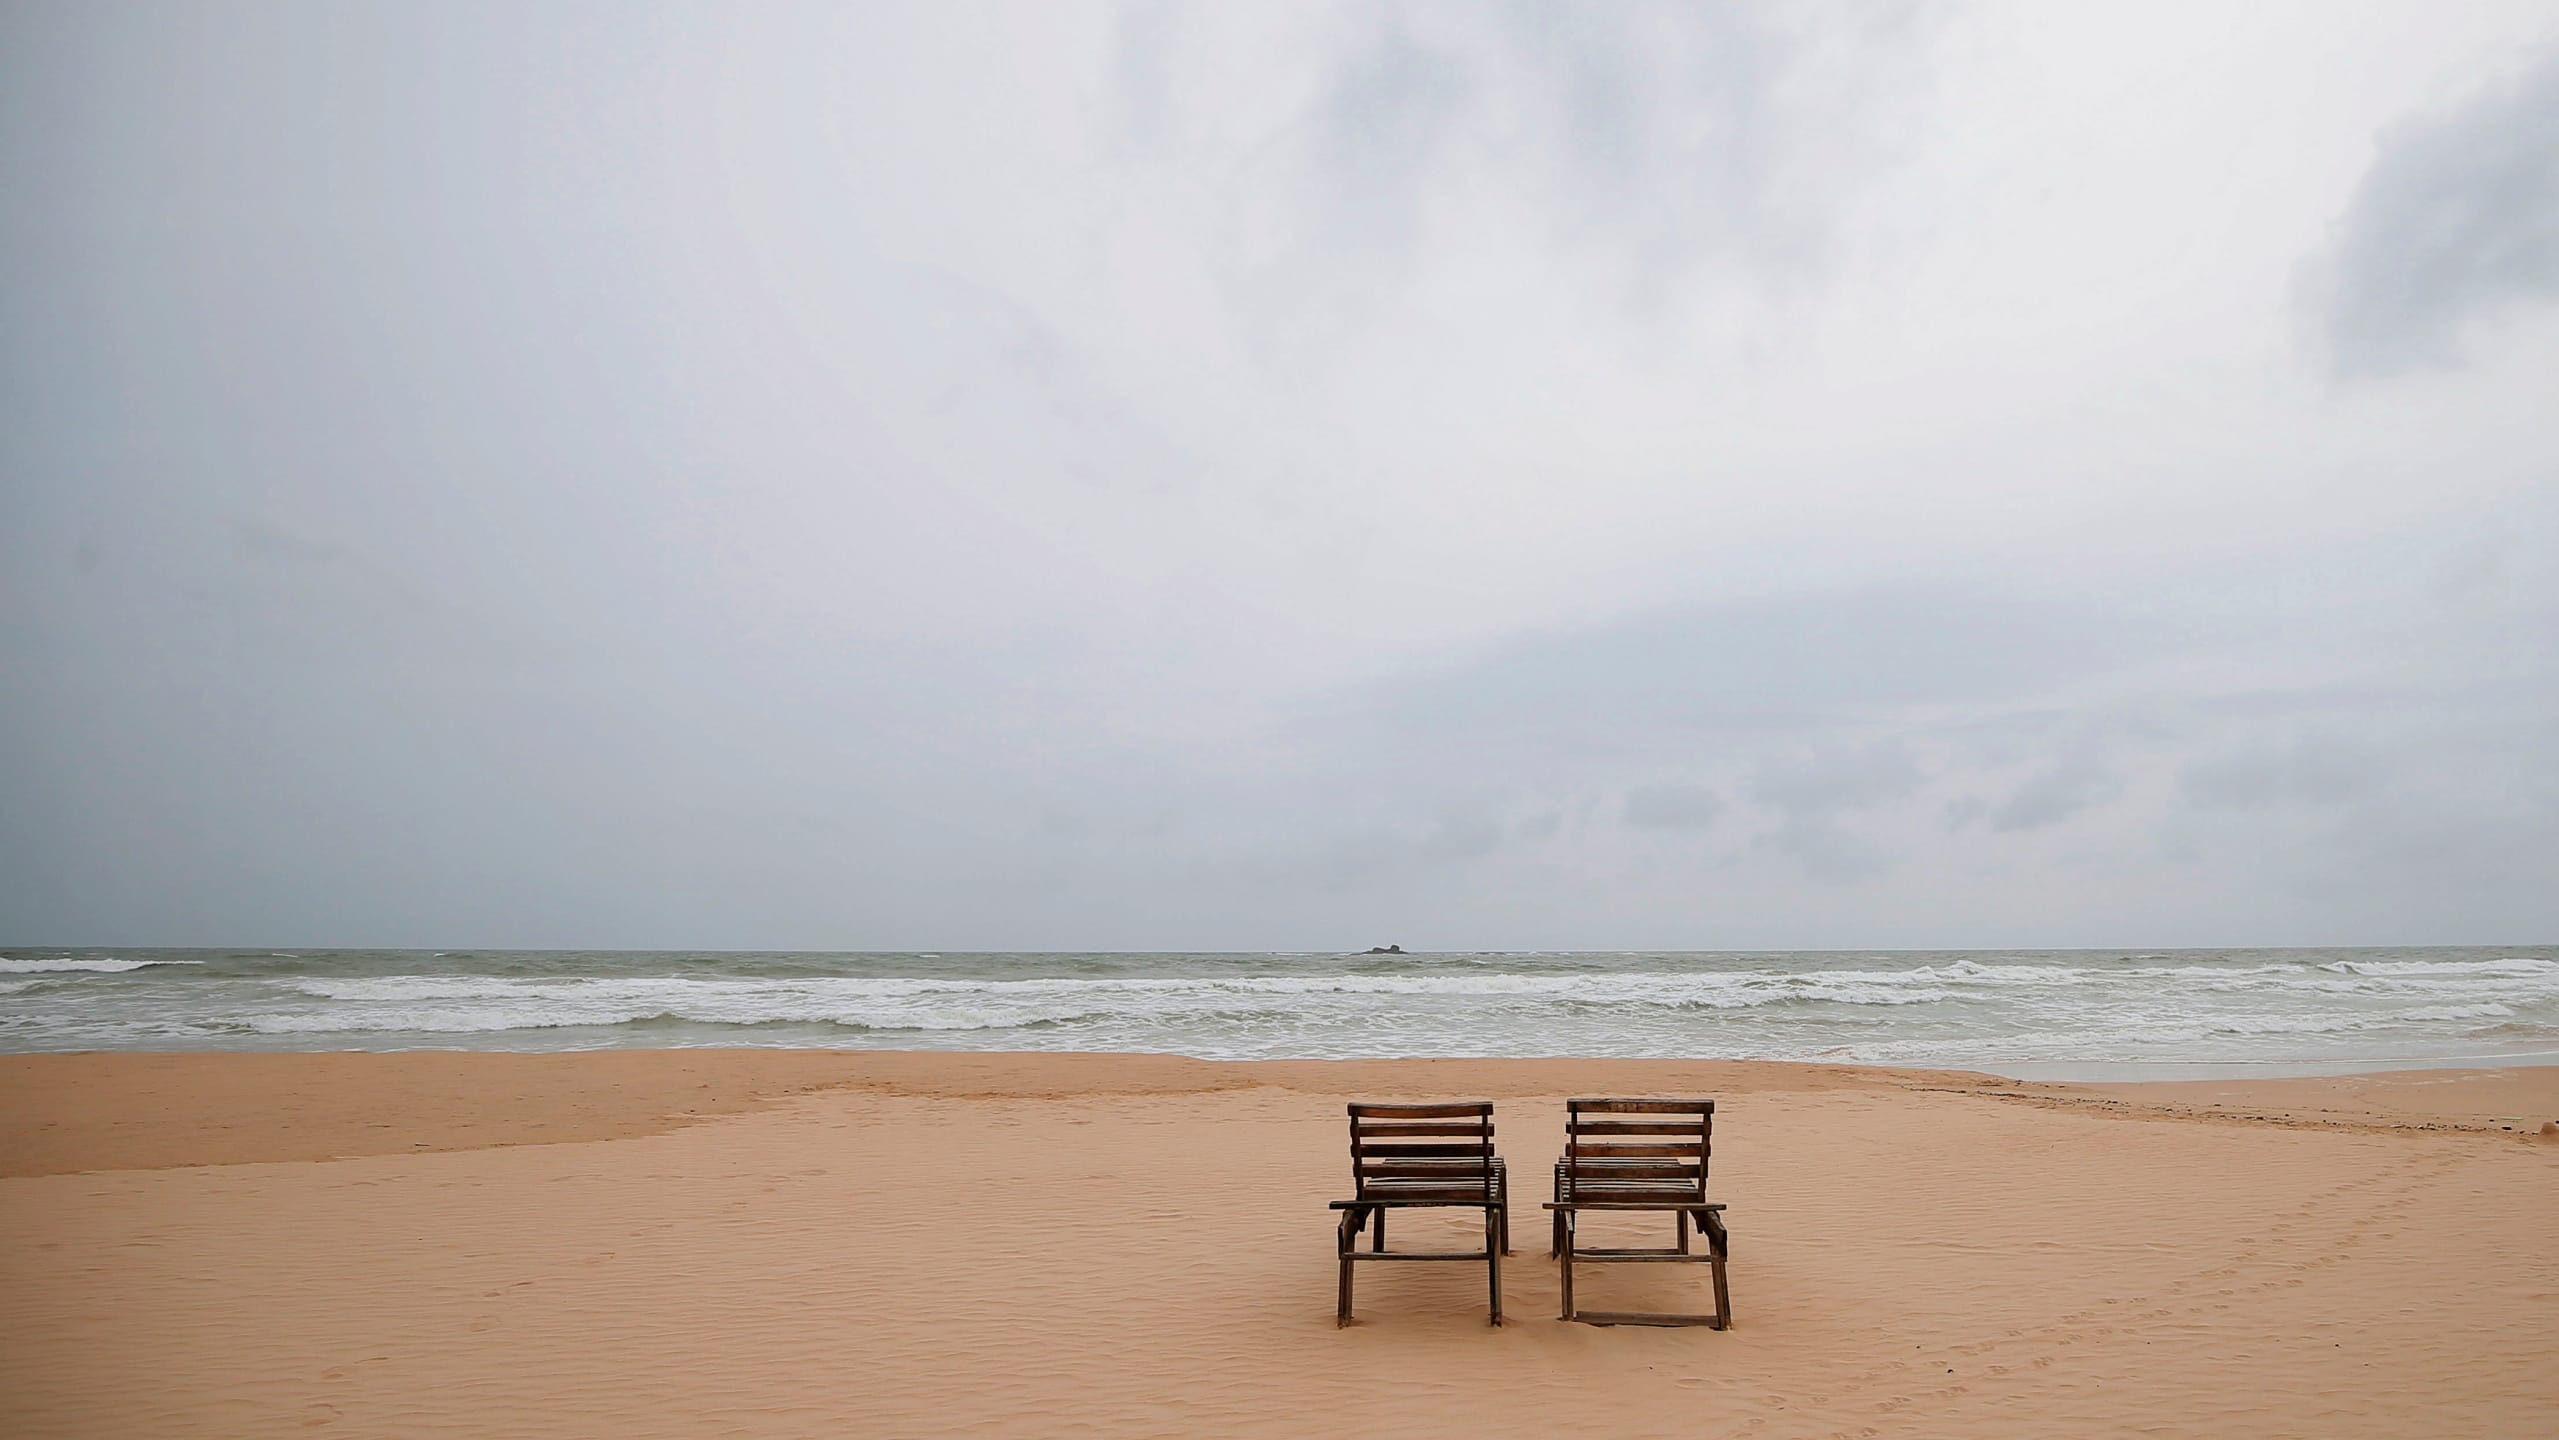 Sri Lanka Was One of the World's Hottest Destinations. Now It's Eerily Empty.